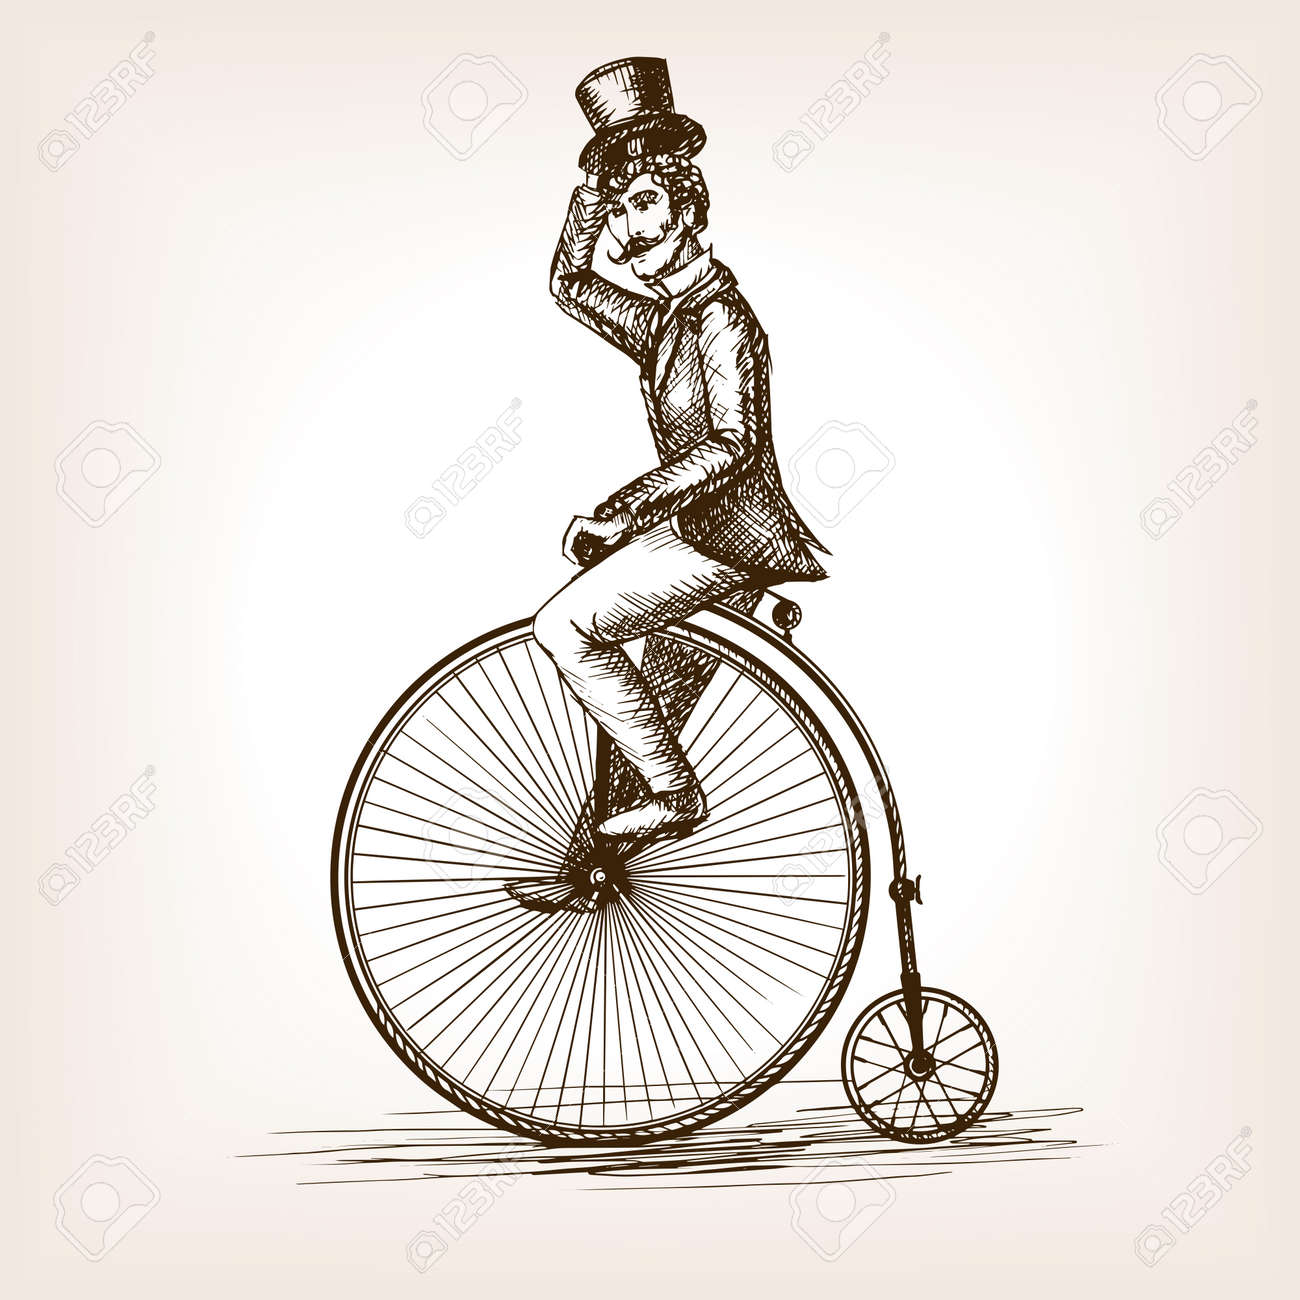 Man on retro vintage old bicycle sketch style vector illustration. Old hand drawn engraving imitation. Gentleman on a bicycle - 51266018